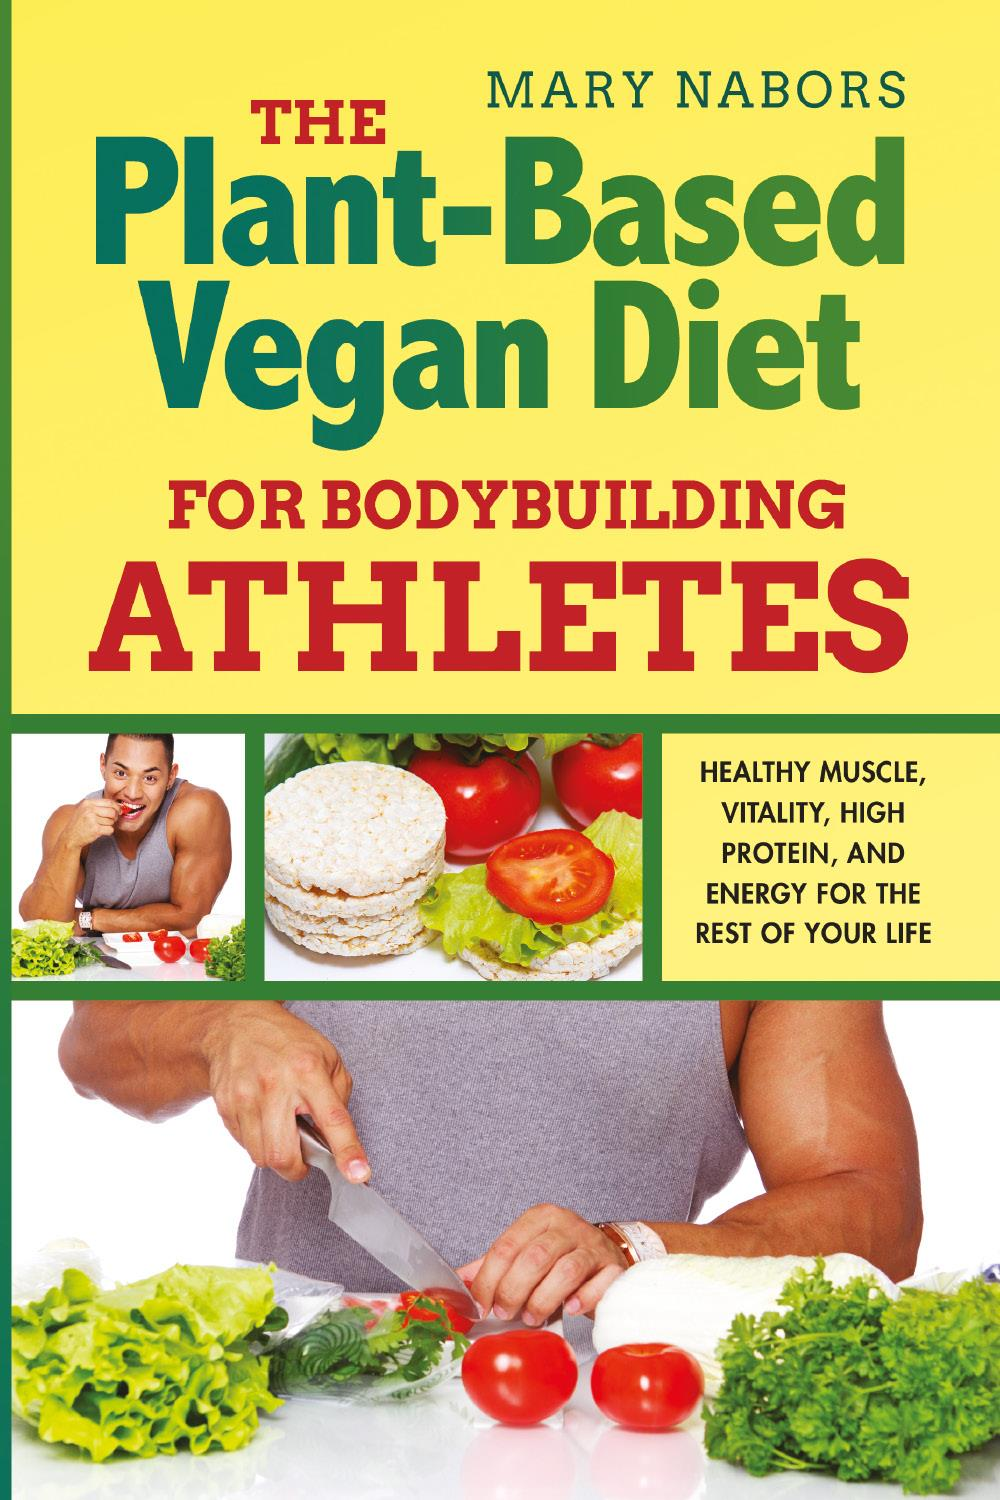 The Plant-Based Vegan Diet for Bodybuilding Athletes. Healthy Muscle, Vitality, High Protein, and Energy for the Rest of your Life